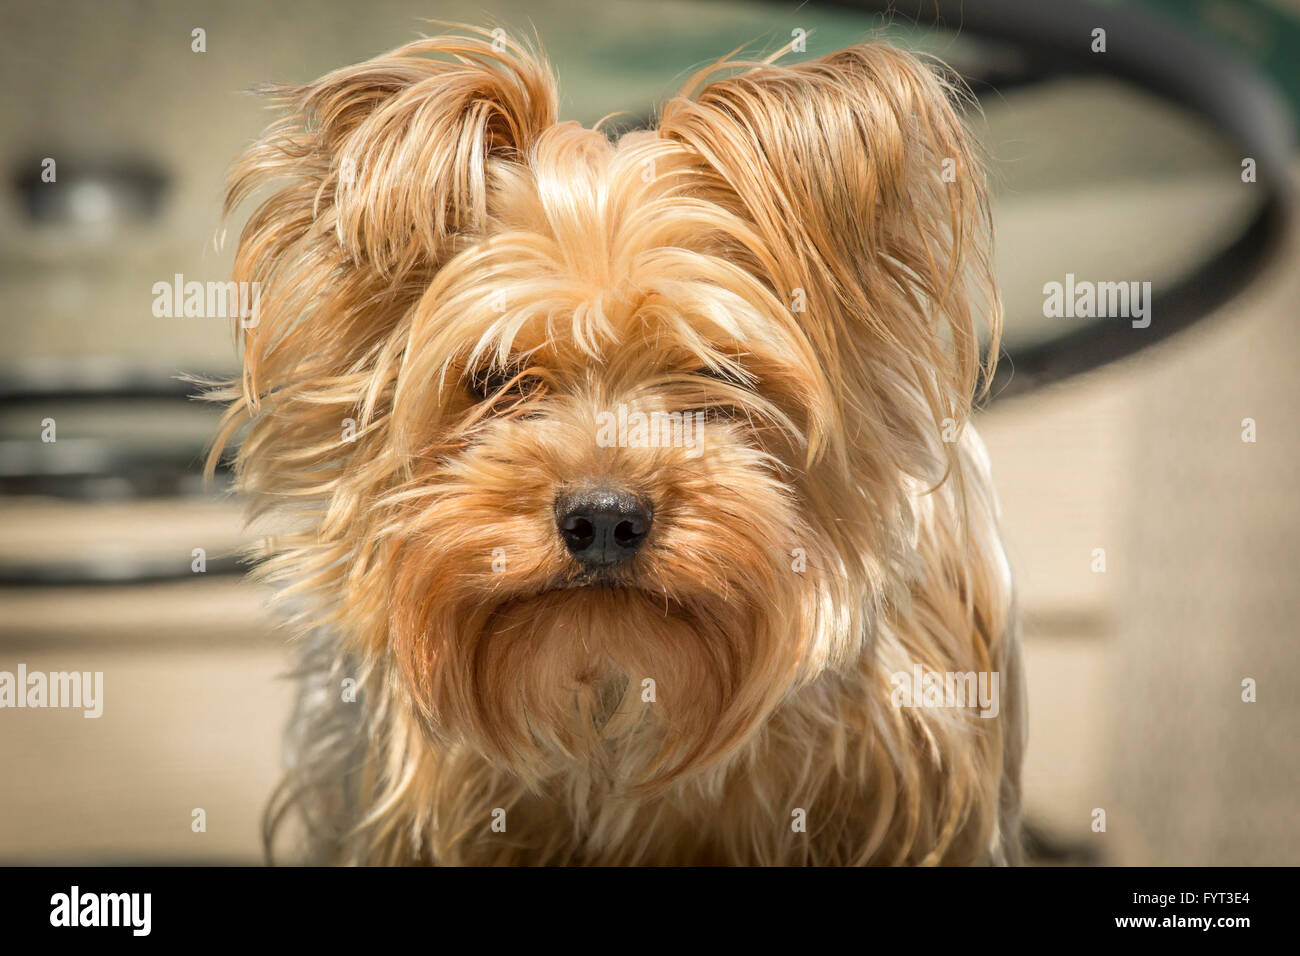 Portrait Yorkshire Terrier Or Yorkie Needs A Haircut Or Trim Stock